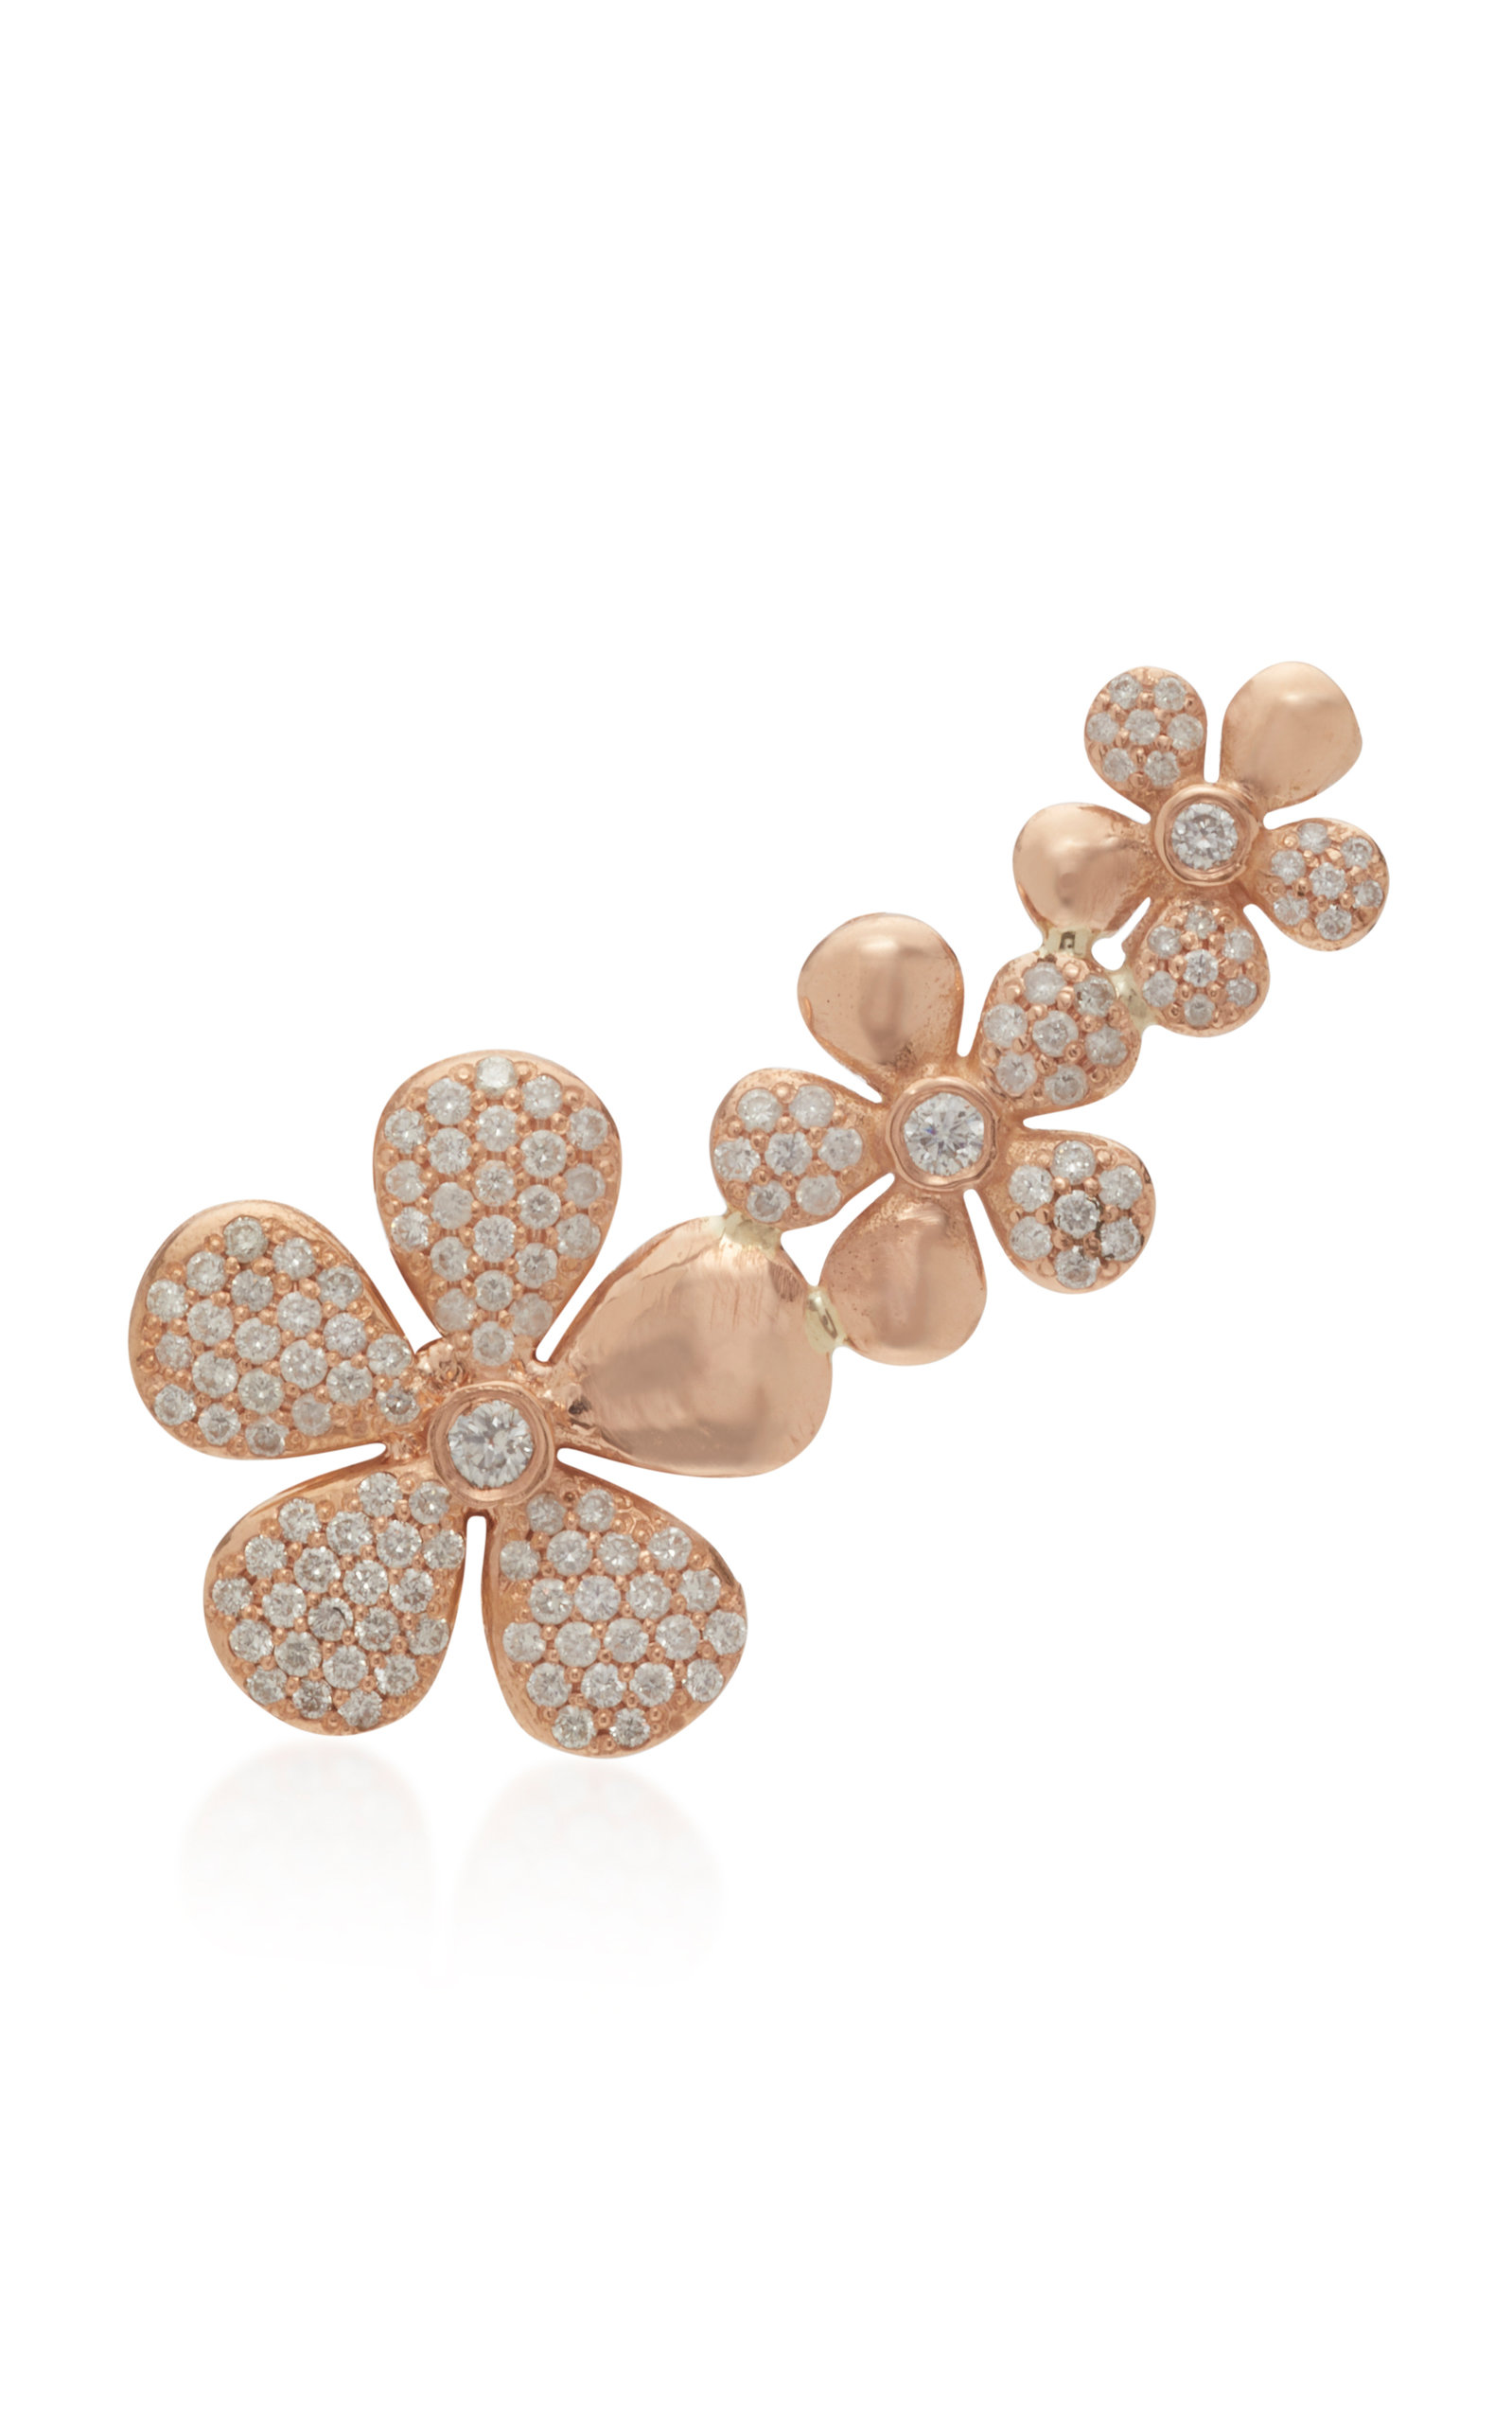 Women's Floral 18K Rose Gold And Diamond Ear Climber